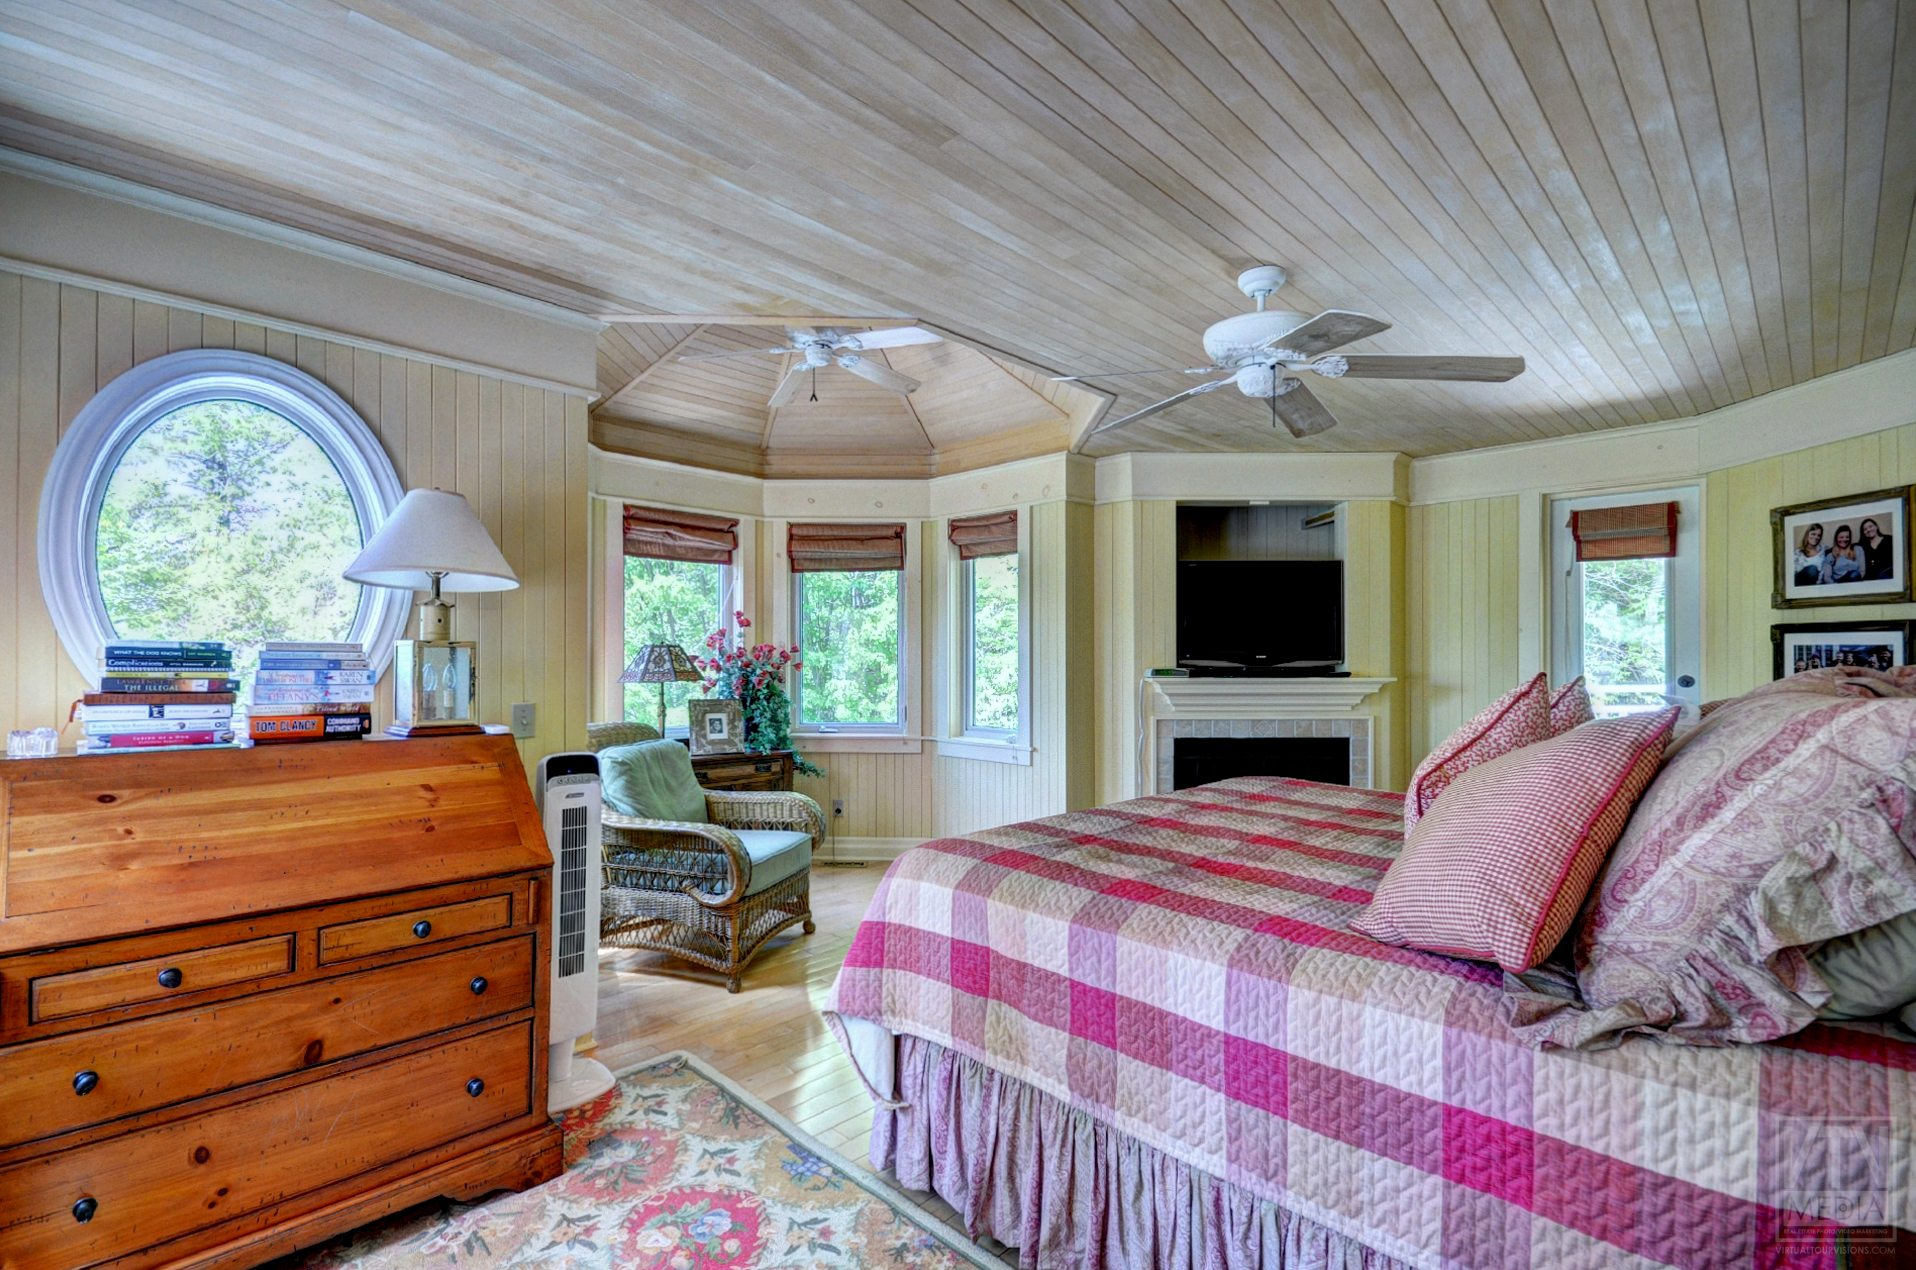 milford-bay-cottage-for-sale-1022-milford-manor-road-9